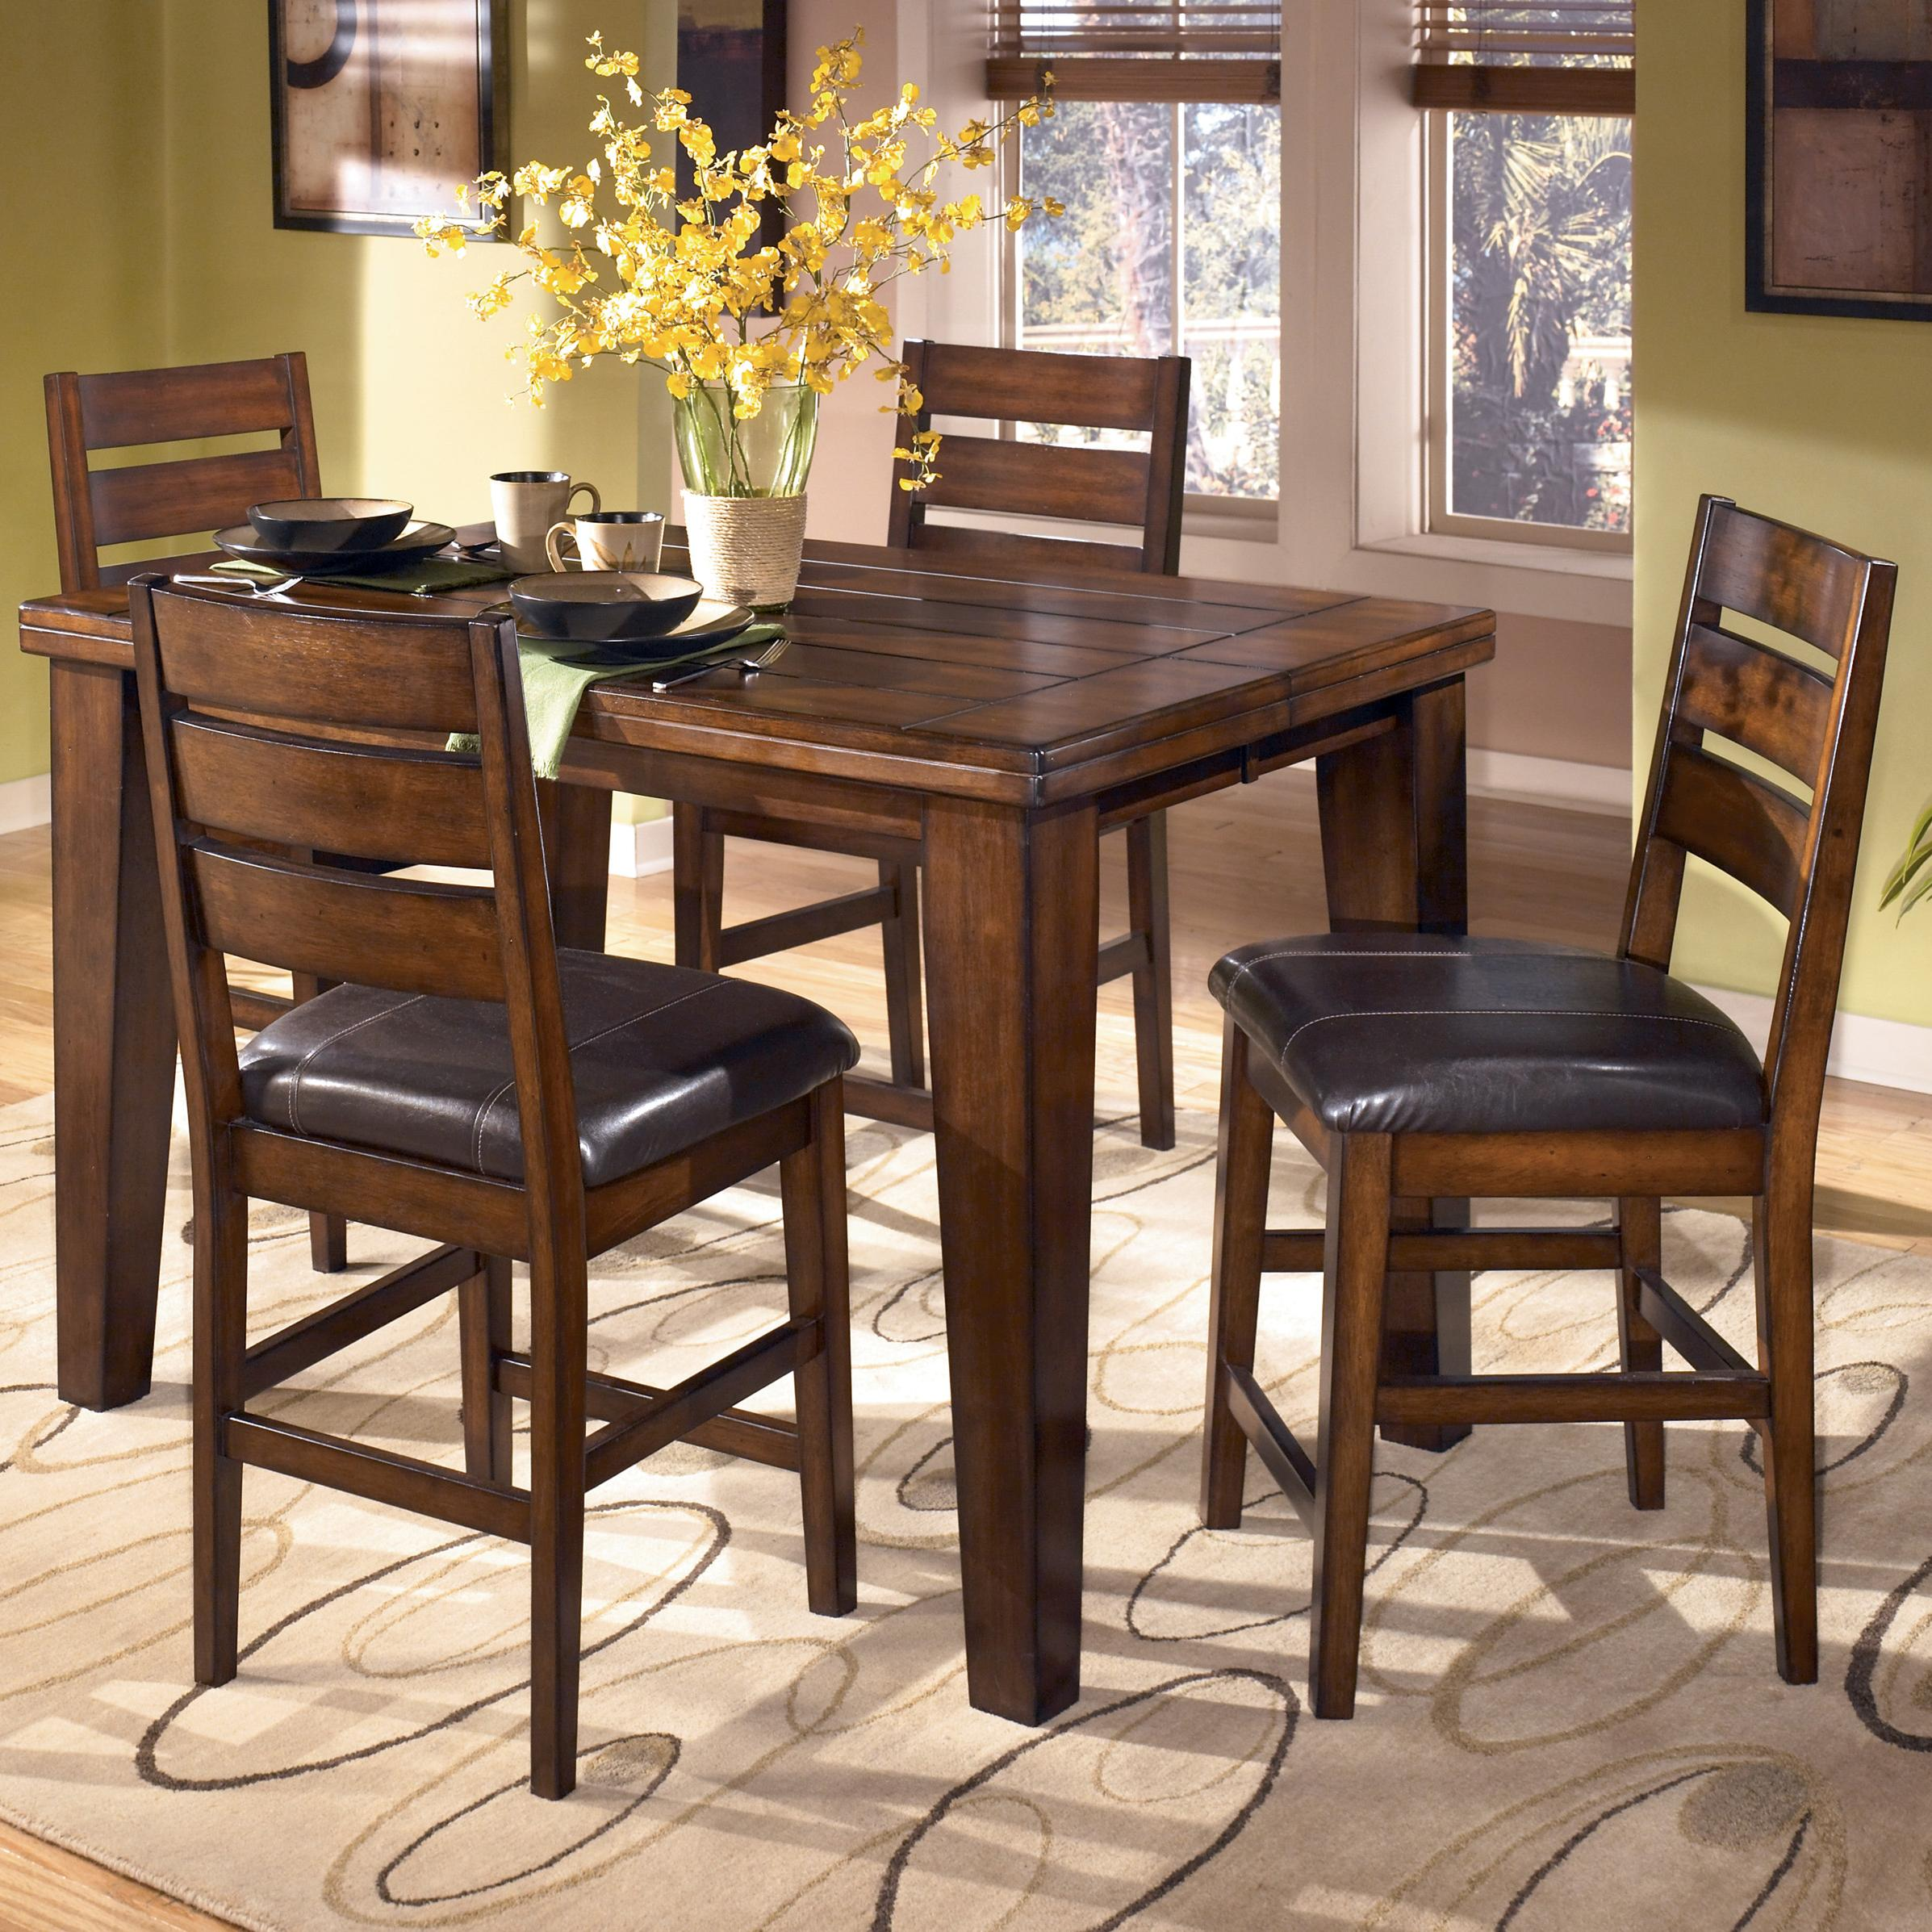 Counter Butterfly Table and 4 Stools